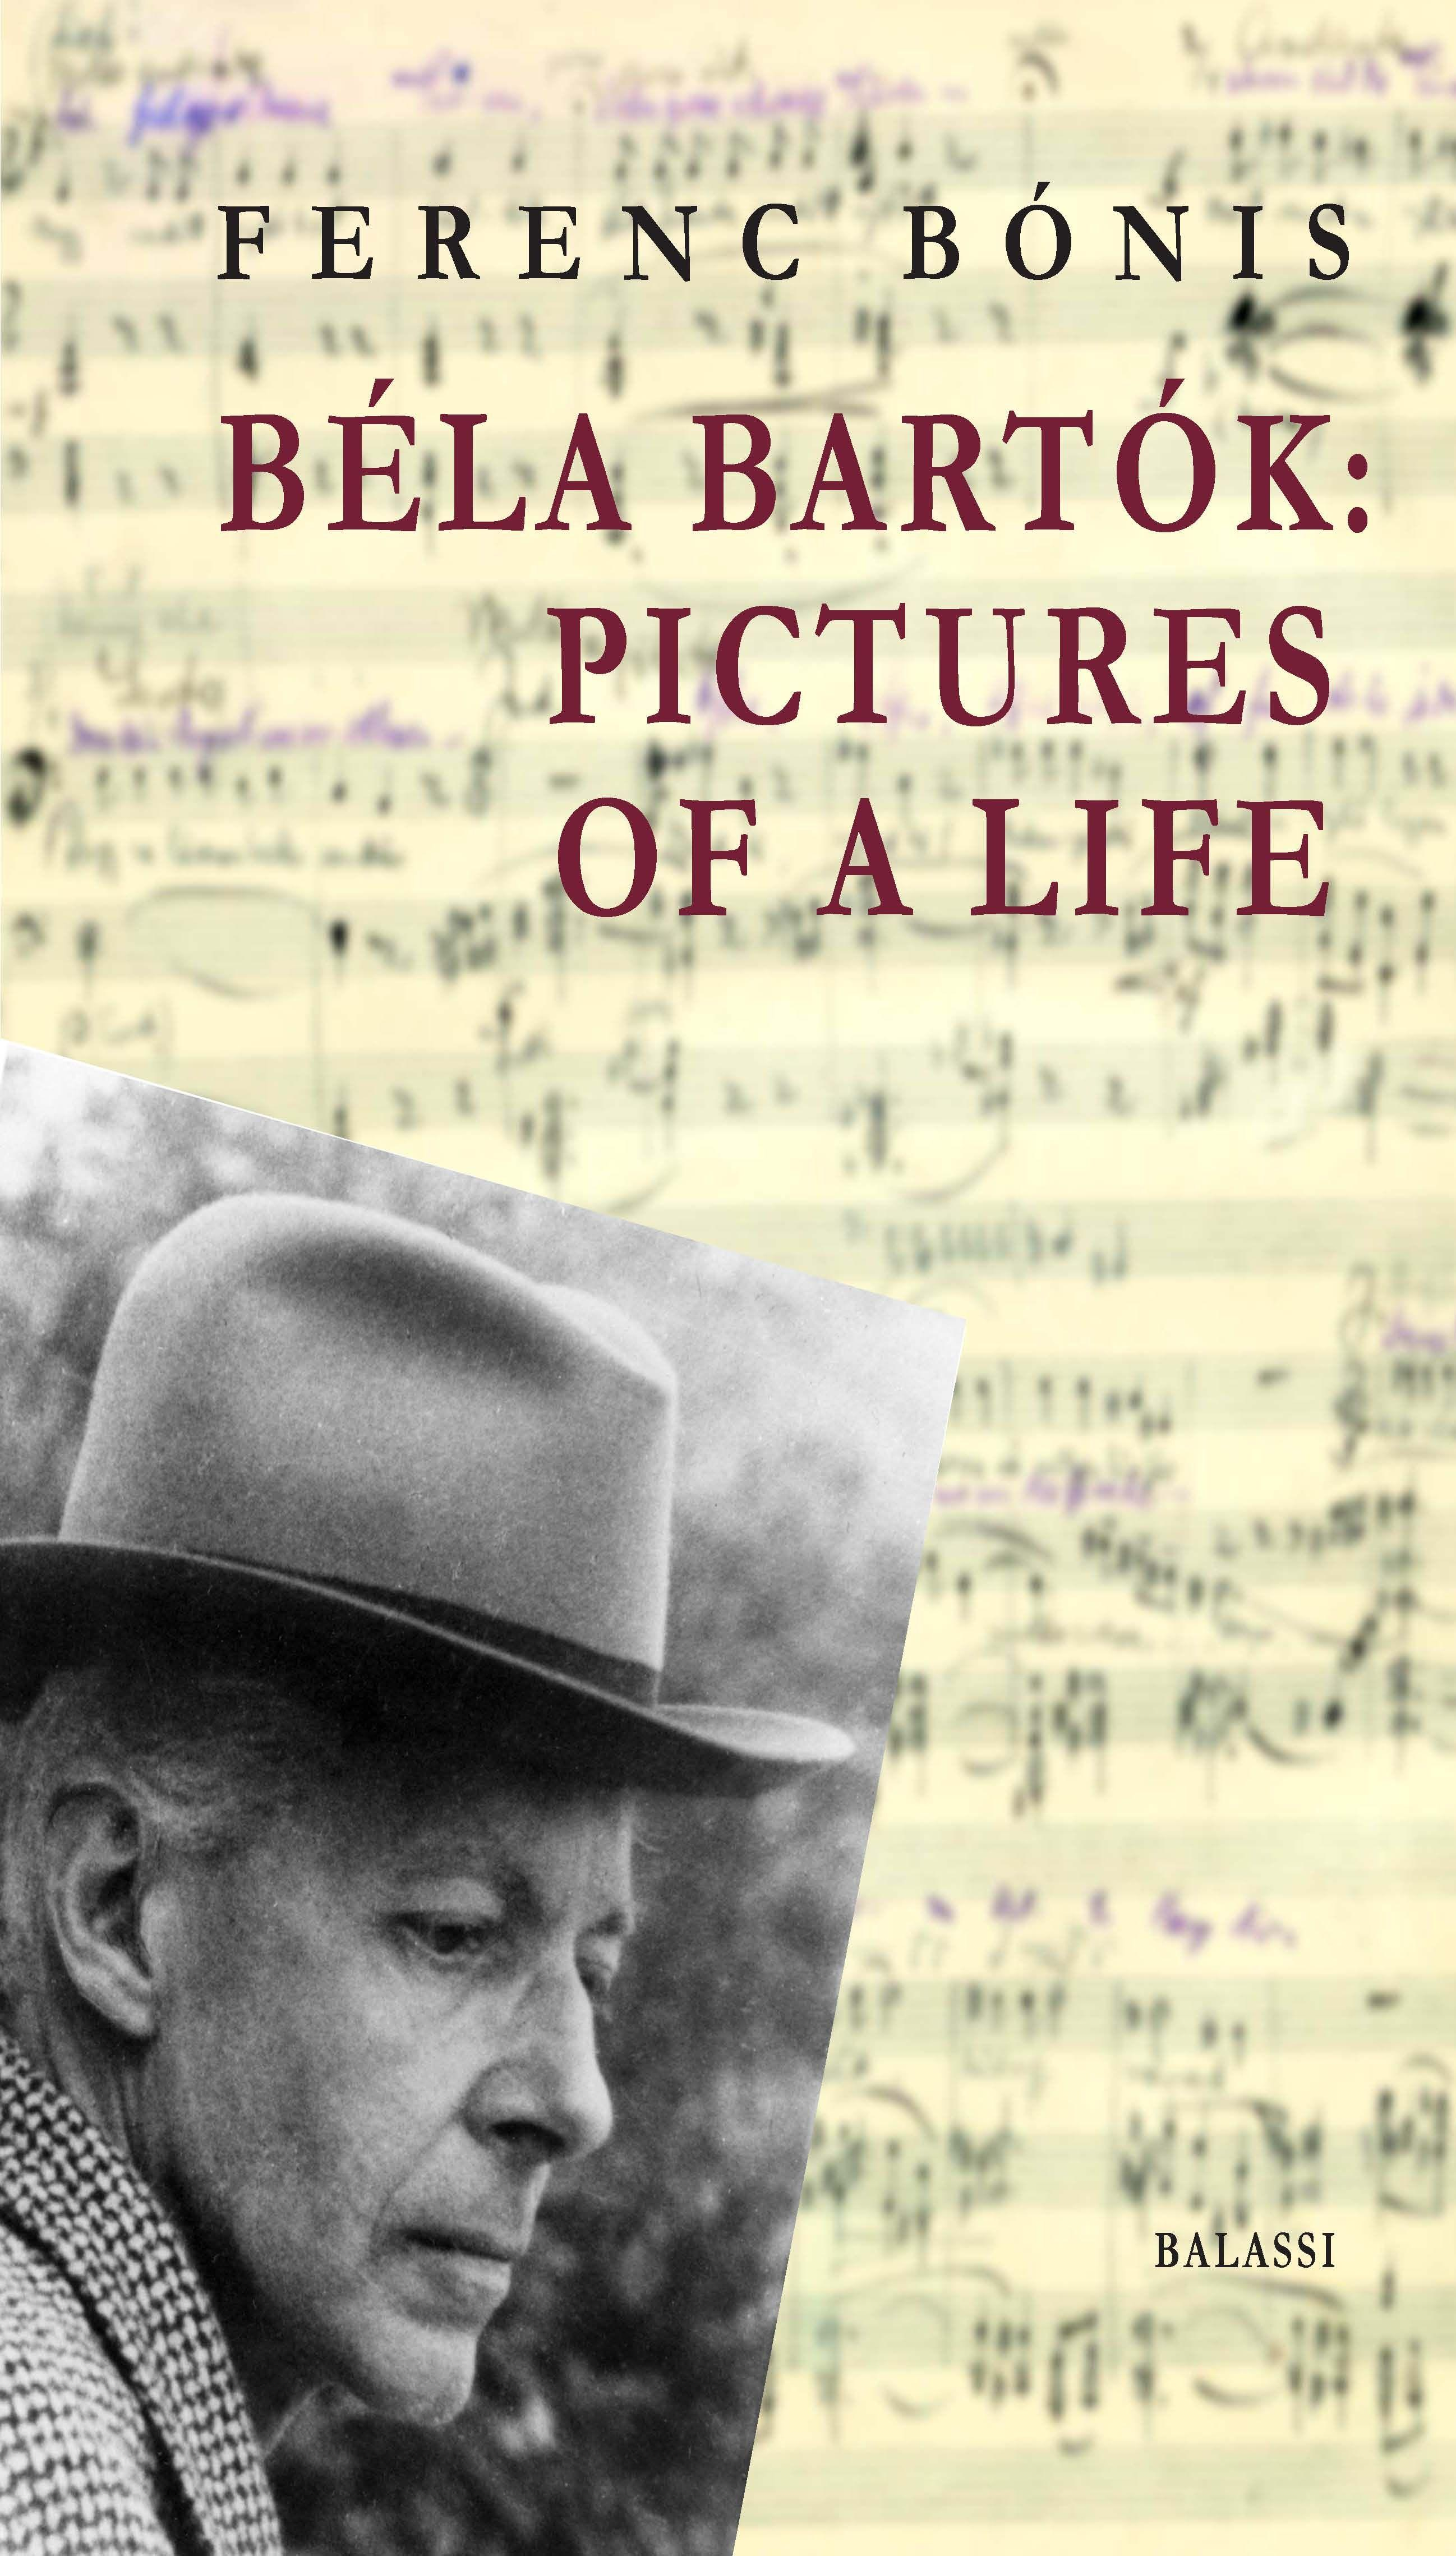 BÉLA BARTÓK: PICTURES OF A LIFE